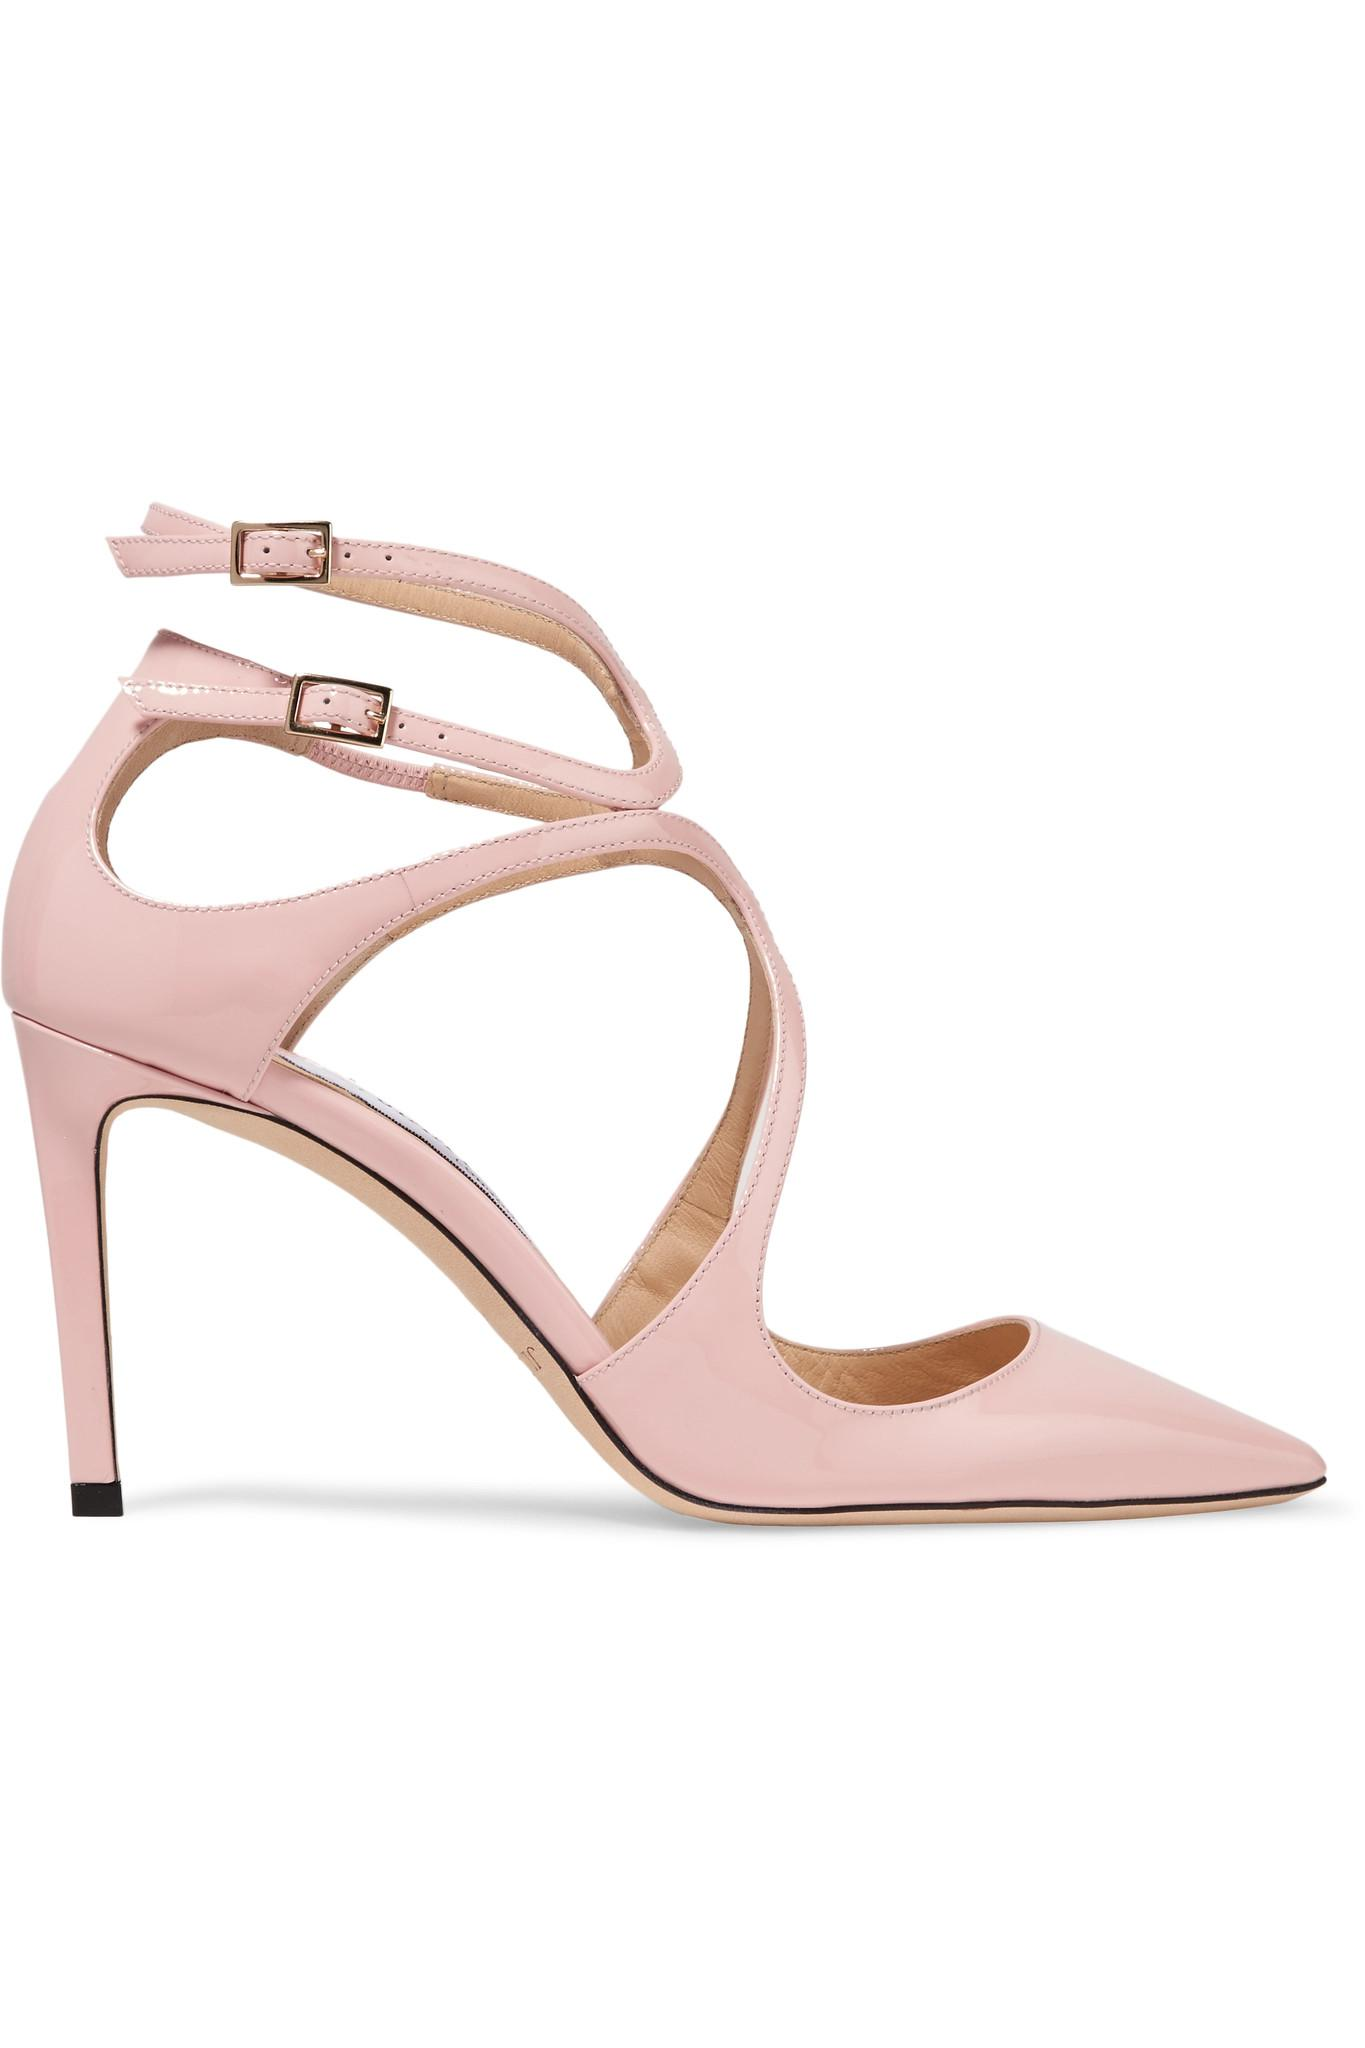 0265f553397 ... order jimmy choo lancer 85 patent leather pumps in pink lyst fd673 a3fbc